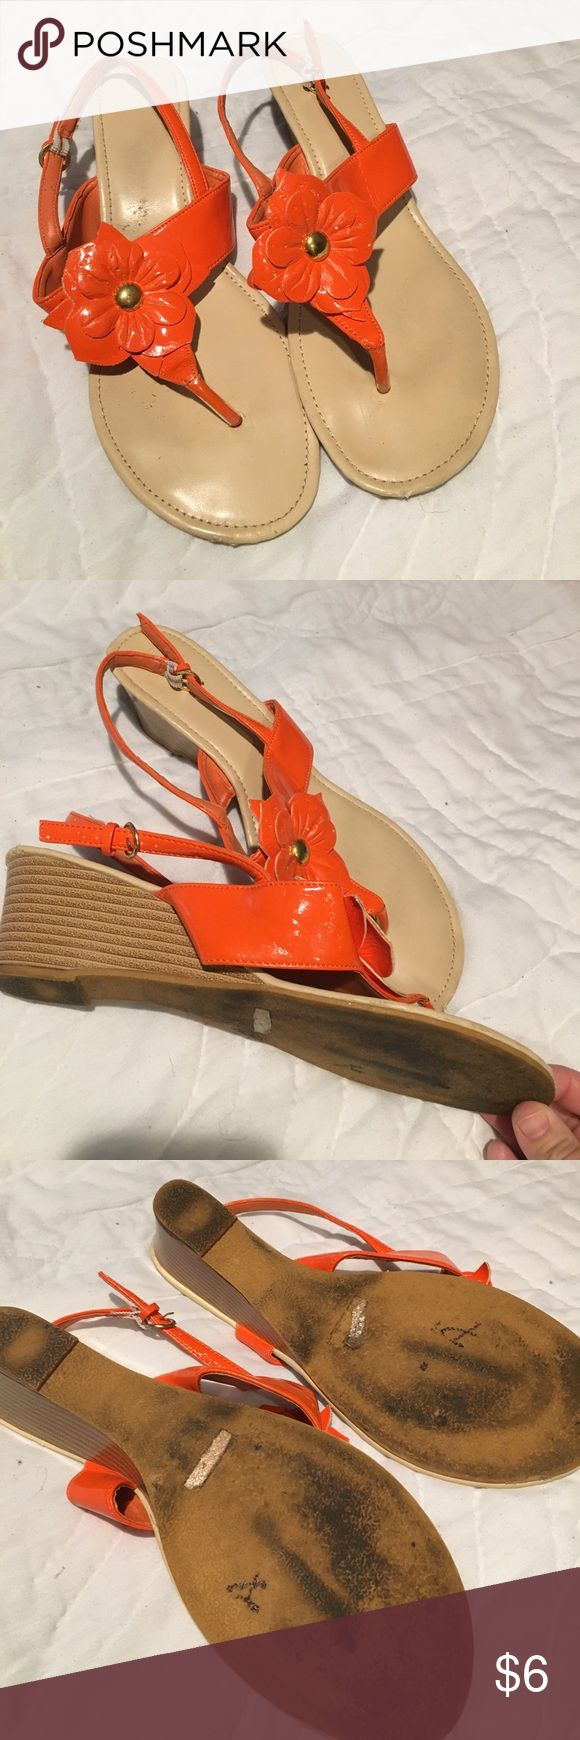 cute wedge sandals Orange and no marked brand and worn  so selling cheap or bundle and include for FREE Just let me know or make an offer minus this cost. Size 10. not marked but they are a 10 Shoes Sandals